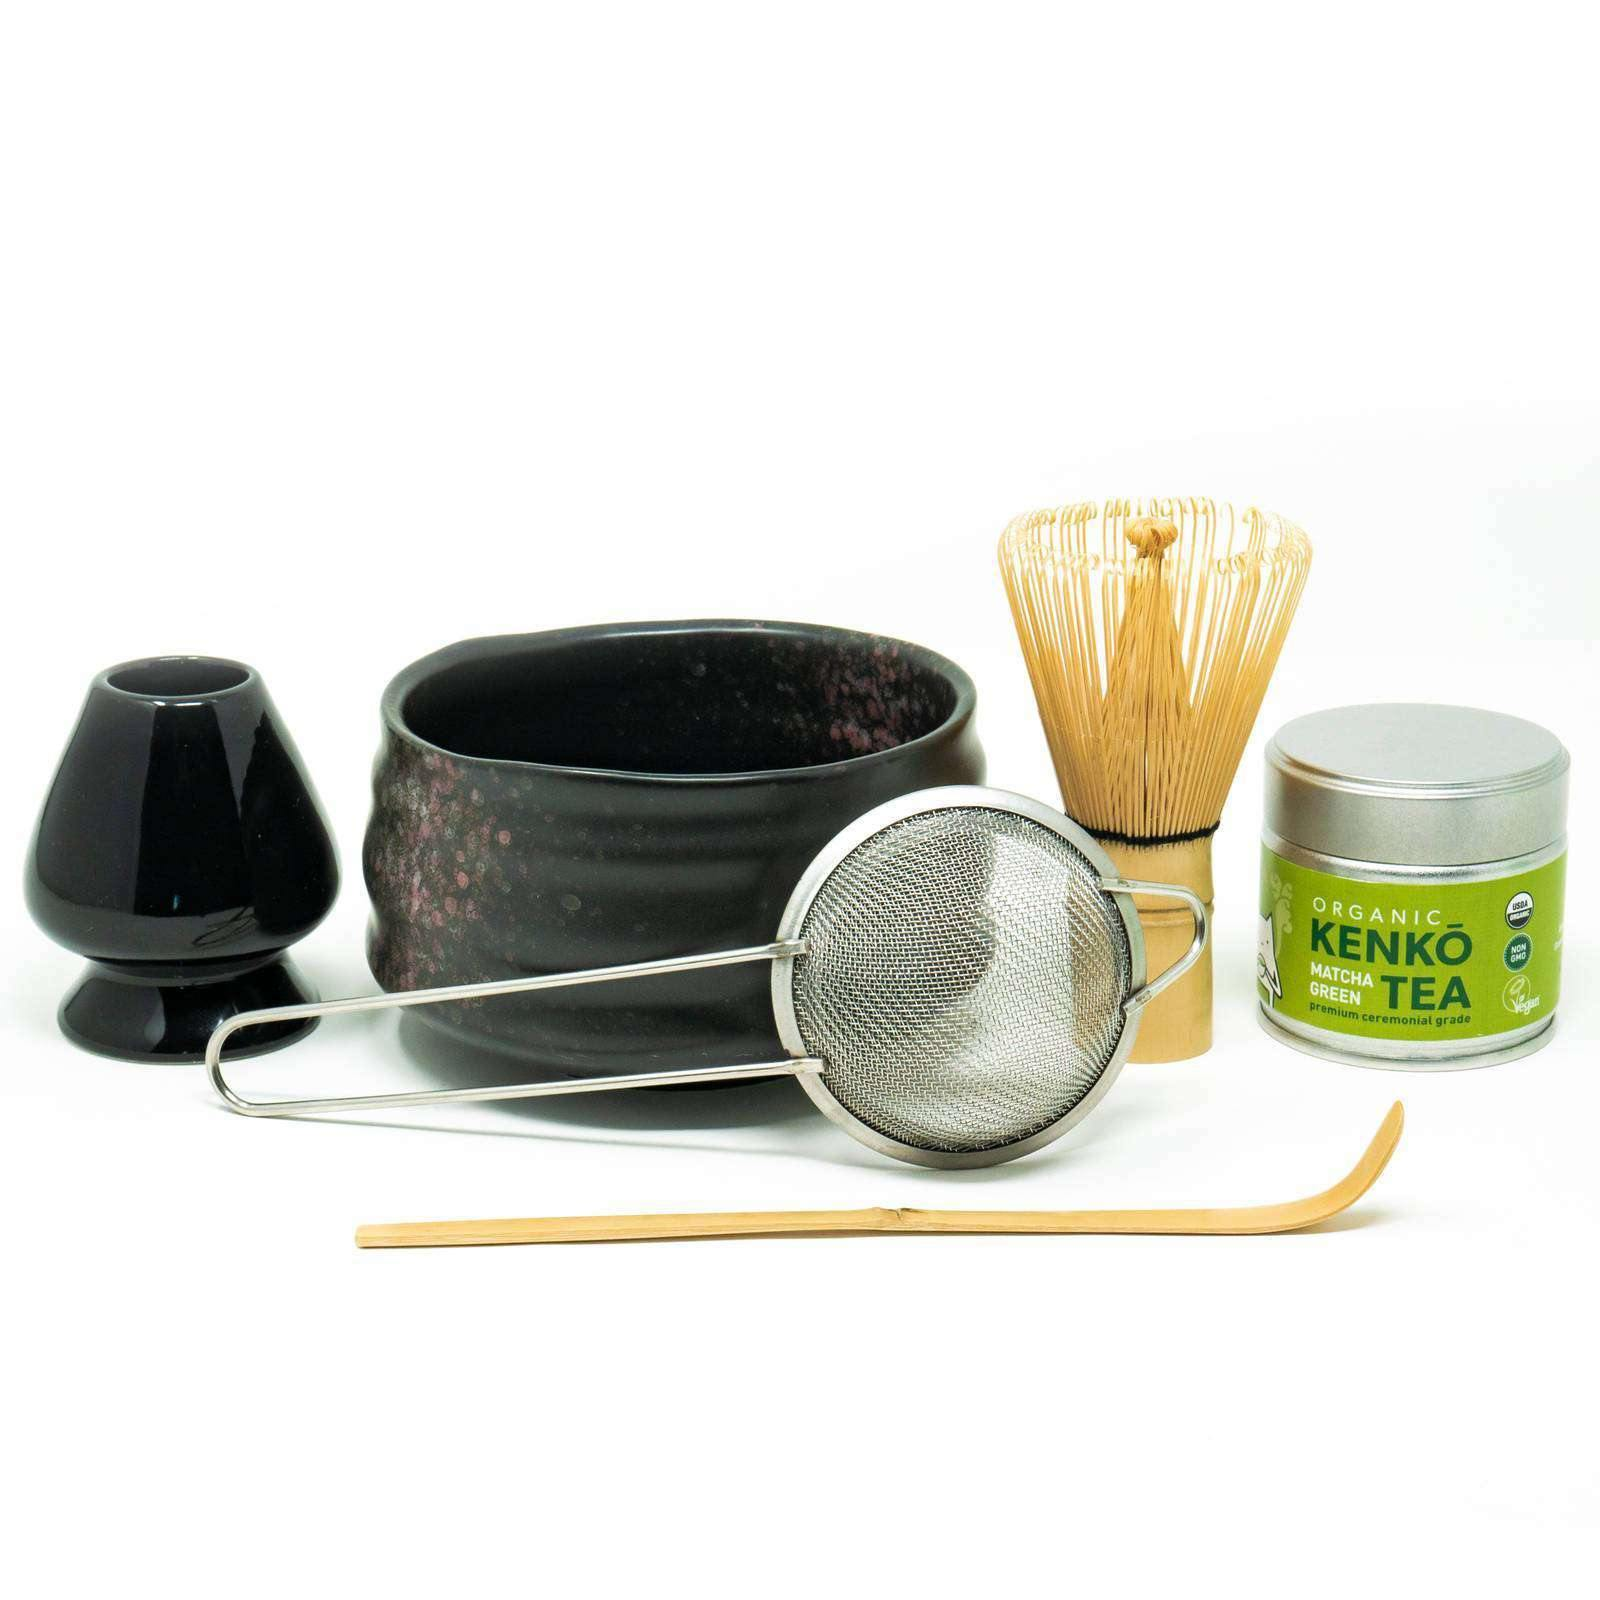 Japanese Matcha Tea Gift Set - 6 Piece